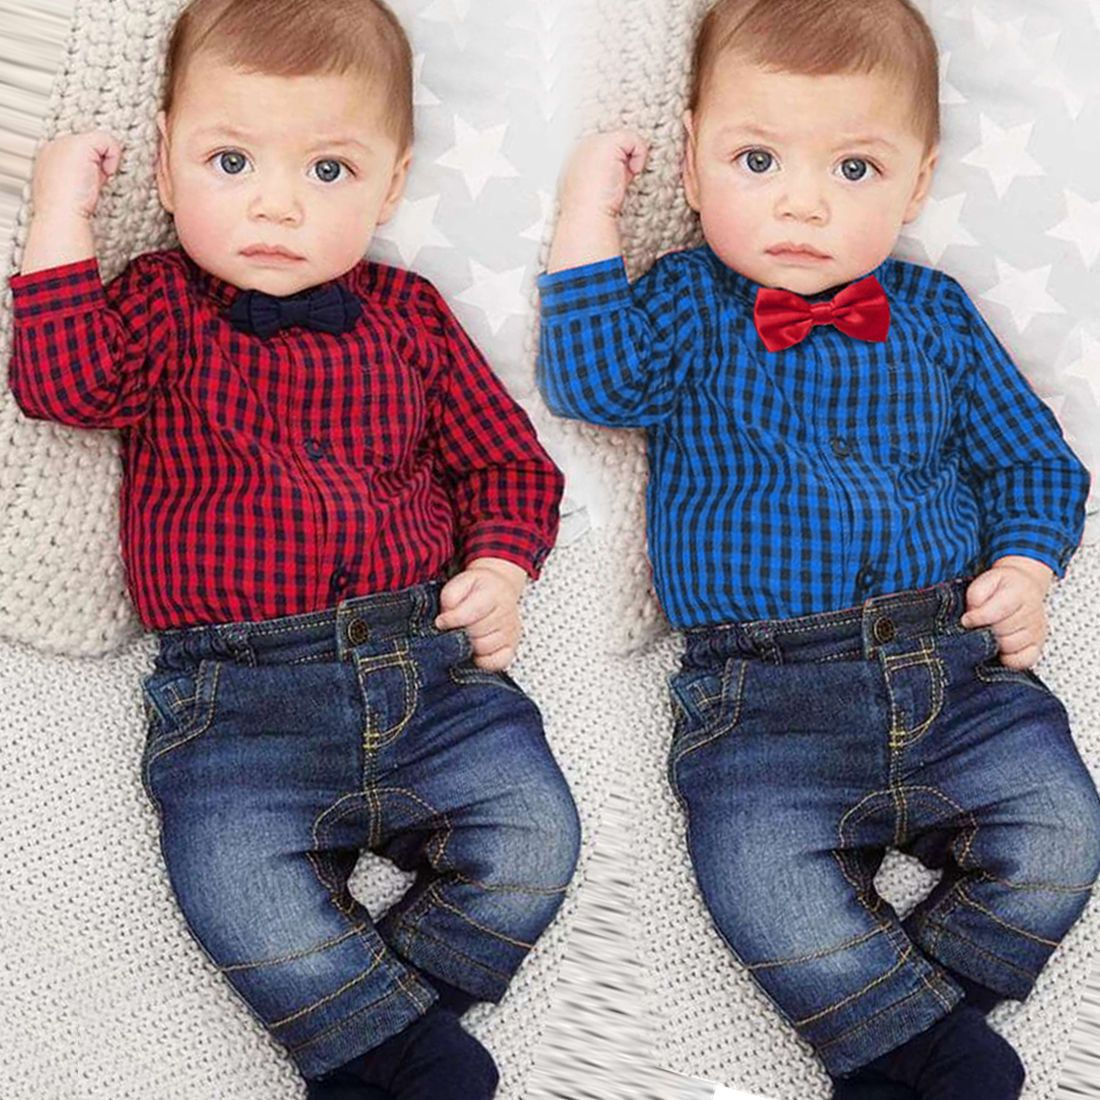 8dc327b03 Kids Baby Boy Clothes Romper Tops+Jeans Pants 2PCS Outfit Set US ...